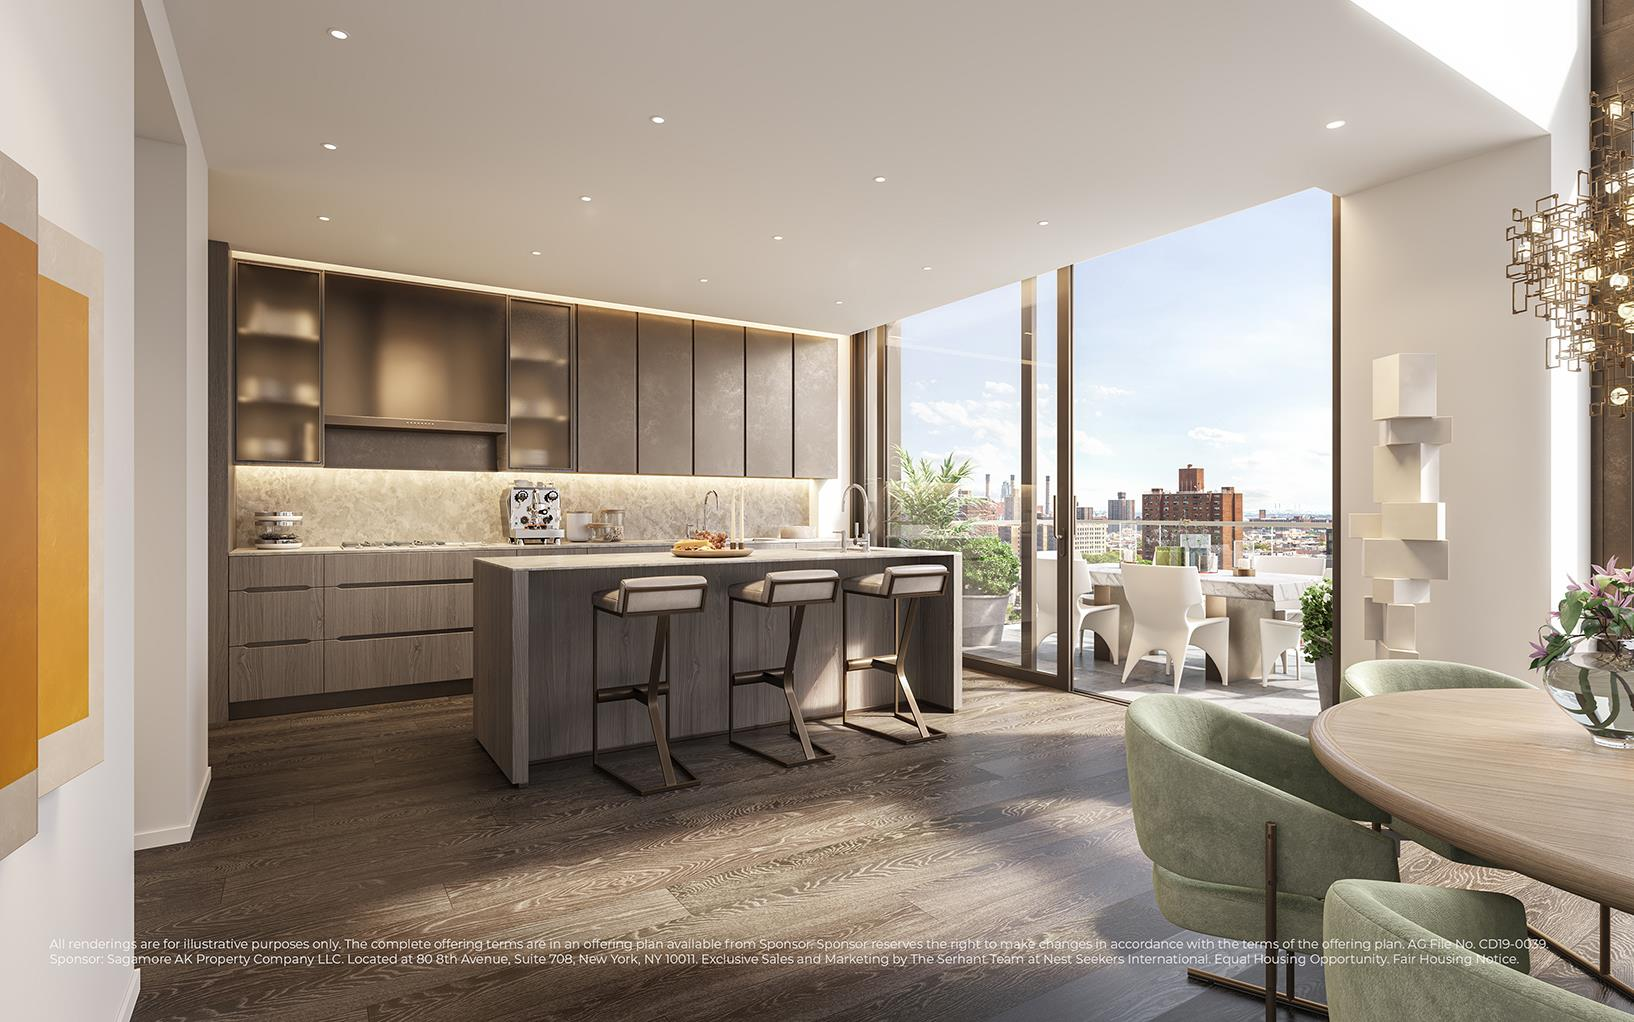 IMMINENT OCCUPANCYA luxurious condo crafted by renowned designer, Thomas Juul-Hansen, this bespoke 1,387 sq. ft. 2-bedroom, 2.5-bathroom home blends a curated collection of elegant fixtures and finishes with thoughtful layouts that maximize space and natural light.Features include designer-selected European wide-plank oak floors, oversized double-pane windows with eastern exposure, a laundry closet with an externally-vented Whirlpool washer/dryer, energy-efficient multi-zone heating and cooling, Rift Sawn oak closets, and a pair of private balconies totaling 127 sq. ft. with unobstructed views overlooking Sara D. Roosevelt Park.Beyond a tasteful entryway adorned with a coat closet and powder room, the home flows into a bright, open-concept living room, dining room, and kitchen. The living room leads out onto a spacious terrace, while the kitchen is equipped with an eat-in peninsula, honed marble countertops, a matching backsplash, custom white oak cabinets with tempered bronze glass, Dornbracht fixtures, and a suite of high-end fully-integrated appliances from Miele and Sub-Zero.The master bedroom possesses a spacious reach-in closet, access to a private balcony, and a sublime en-suite bathroom with honed marble walls and floors, a custom medicine cabinet with integrated lighting, double sinks, and a walk-in shower, and a deep soaking tub. The second bedroom has its own closet space, balcony access, and a lovely en-suite bathroom.A collection of interlocking villas designed by Thomas Juul-Hansen, 199 Chrystie is a luxury condominium that sits at the nexus of an incredibly dynamic, multi-neighborhood location. It is surrounded by endless retail, social, and food and drink options, and has easy access to the Lower East Side, NoLita, NoHo, SoHo, and the East Village. It is around the corner from Whole Foods, and is close to the B/D/F/M/J/Z/R/W/6 subway lines. The building has a full-service amenities package that includes a custom designed 24-hour attended lobby, priva